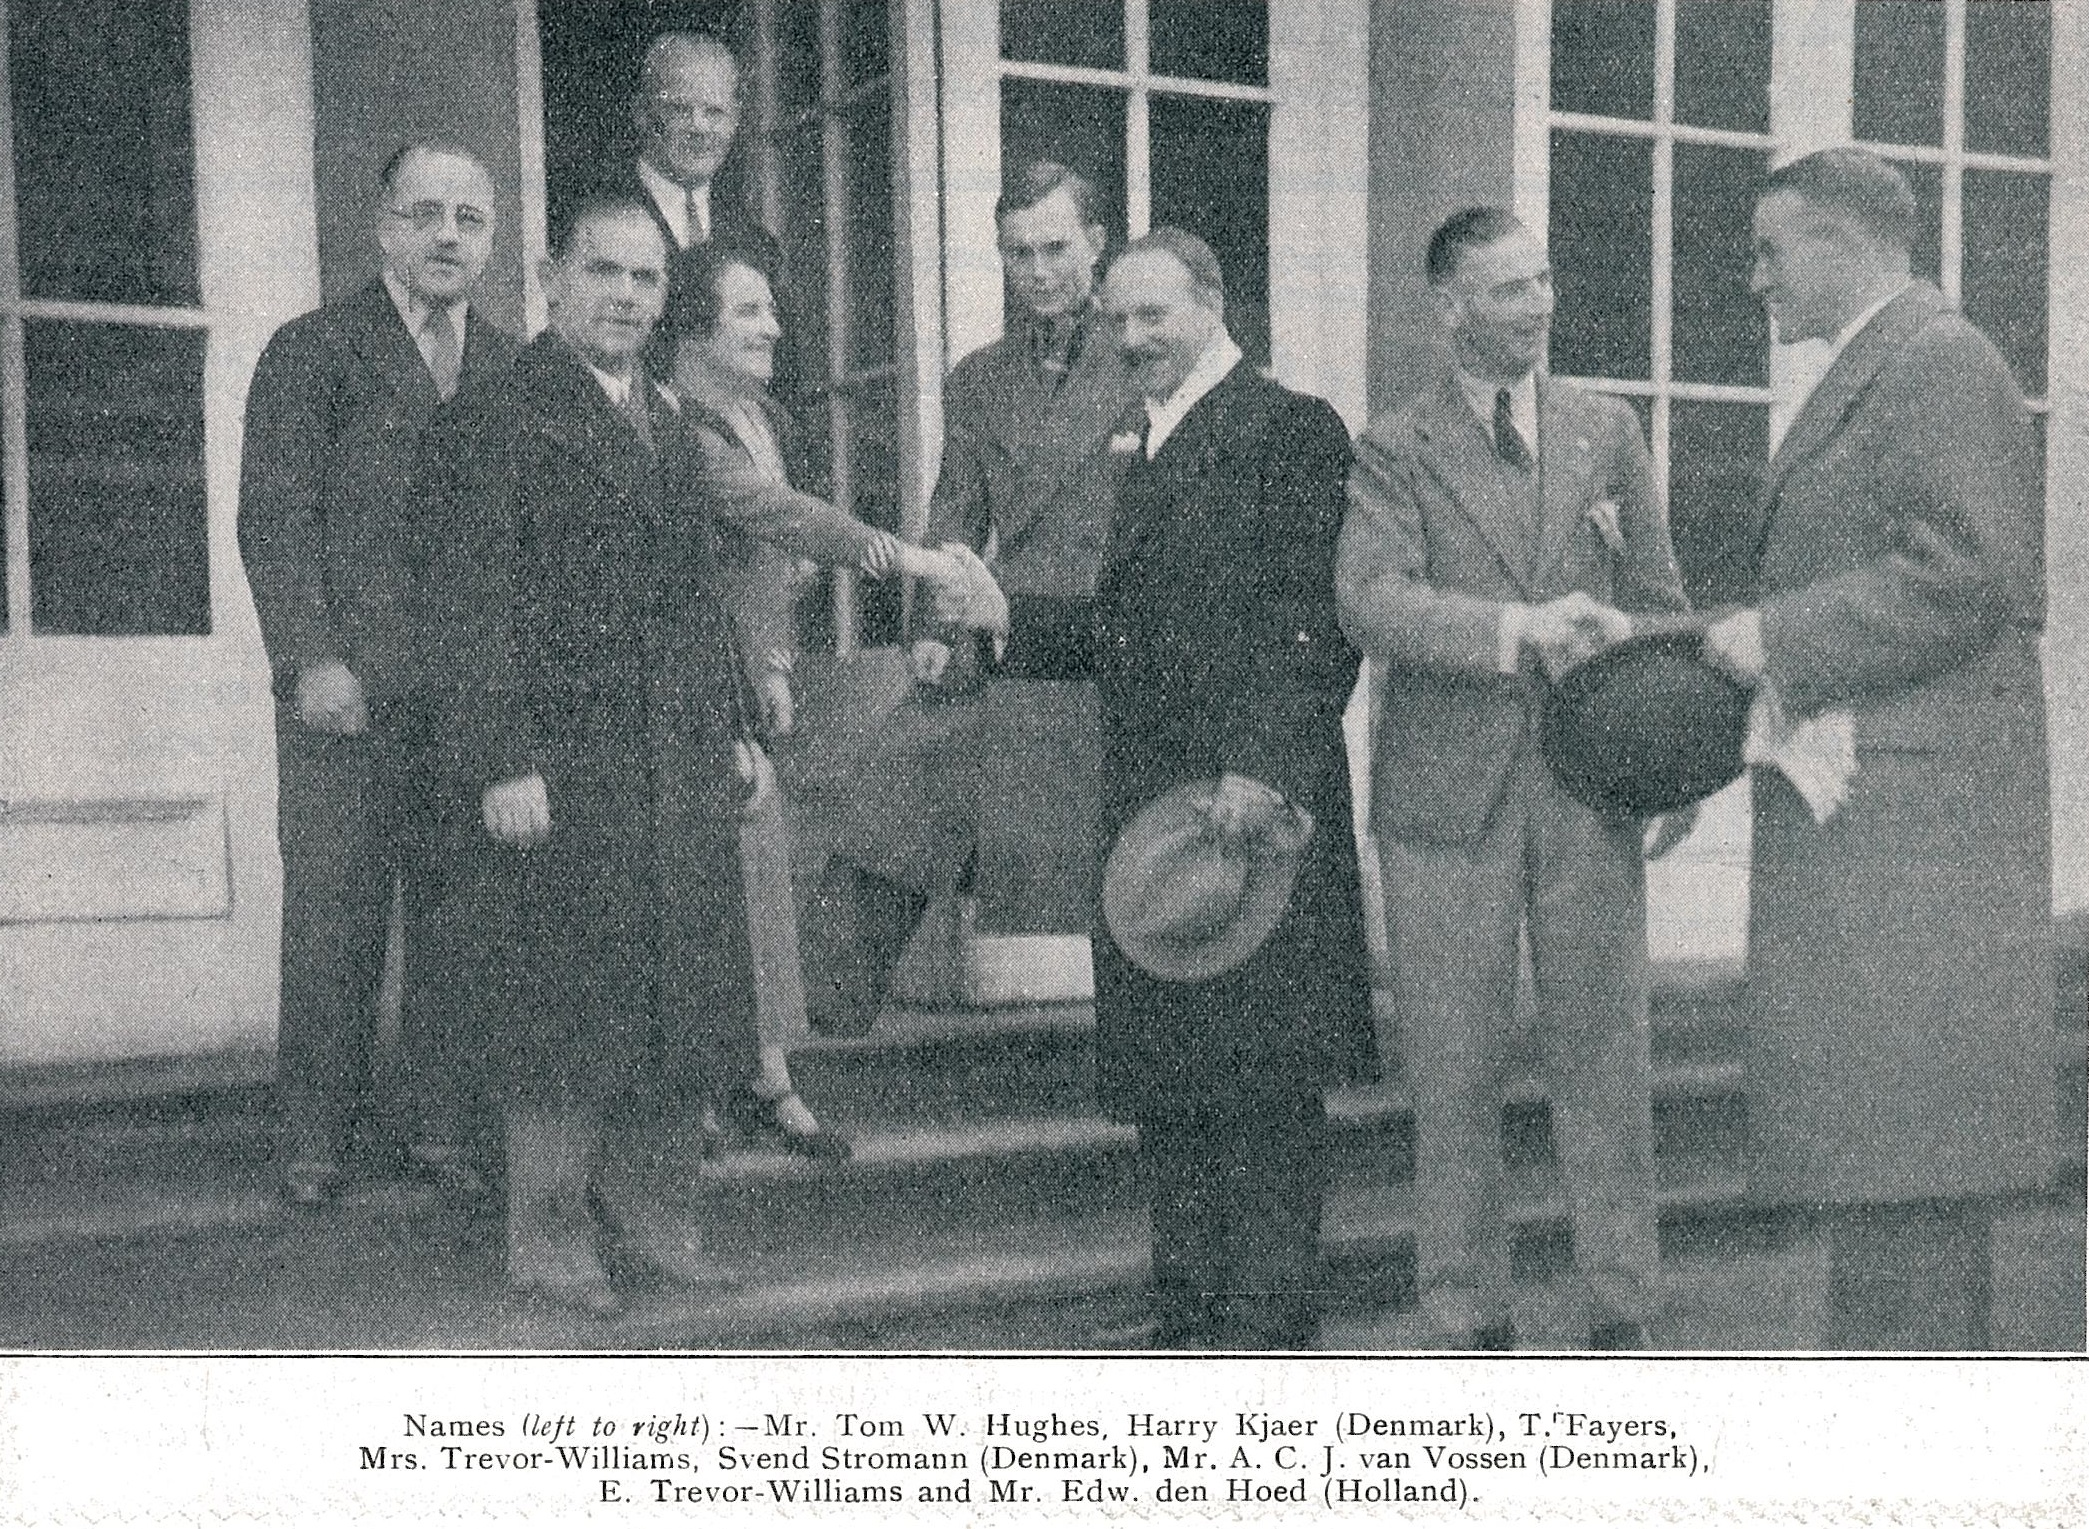 Acj van vossen (3rd from right) - january 1934 badminton gazette